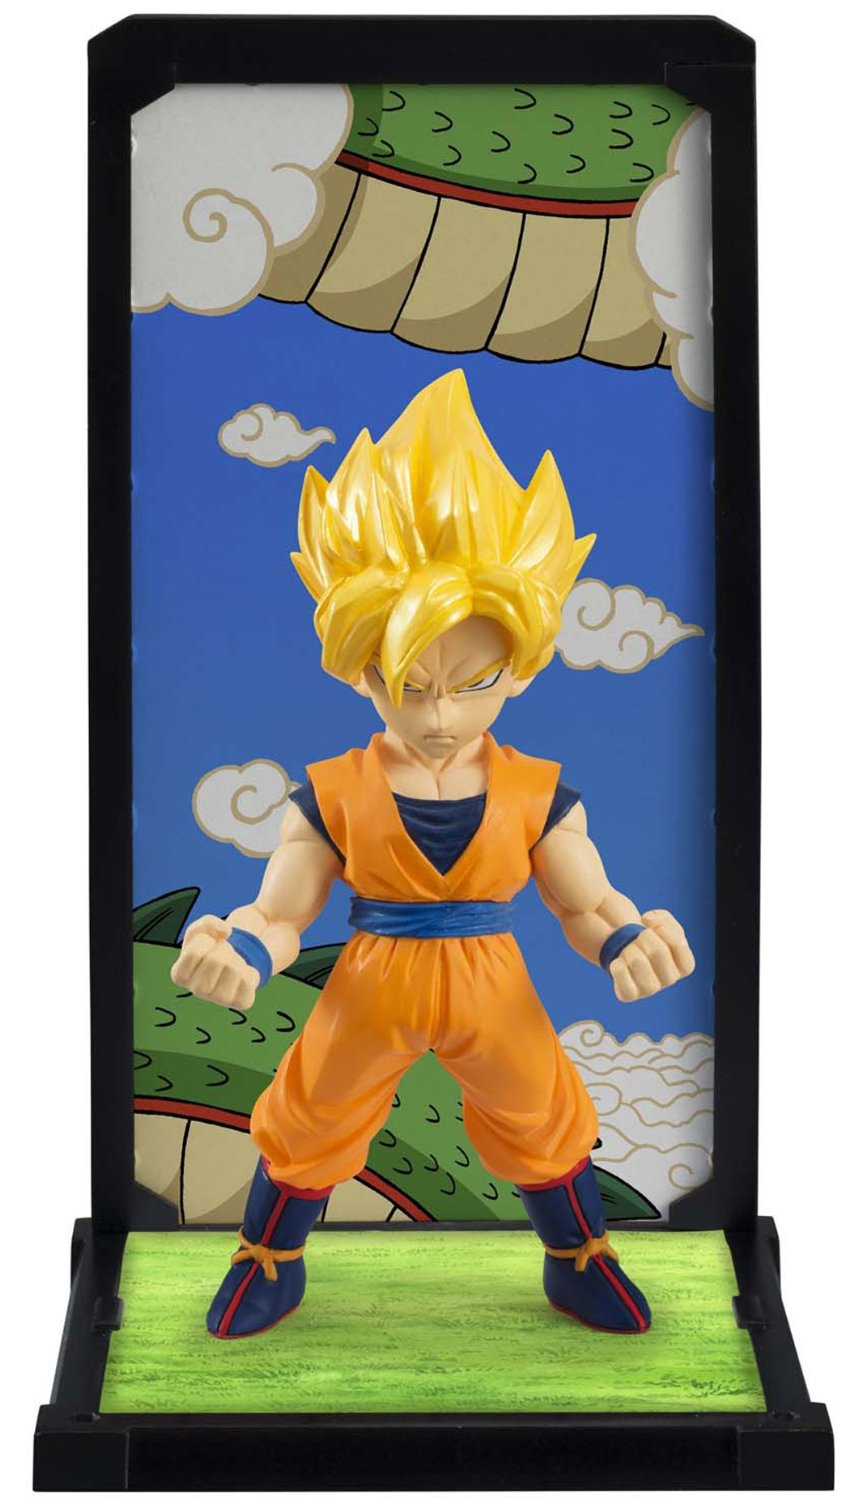 Tamashii Buddies Super Saiyan Son Goku Dragon Ball